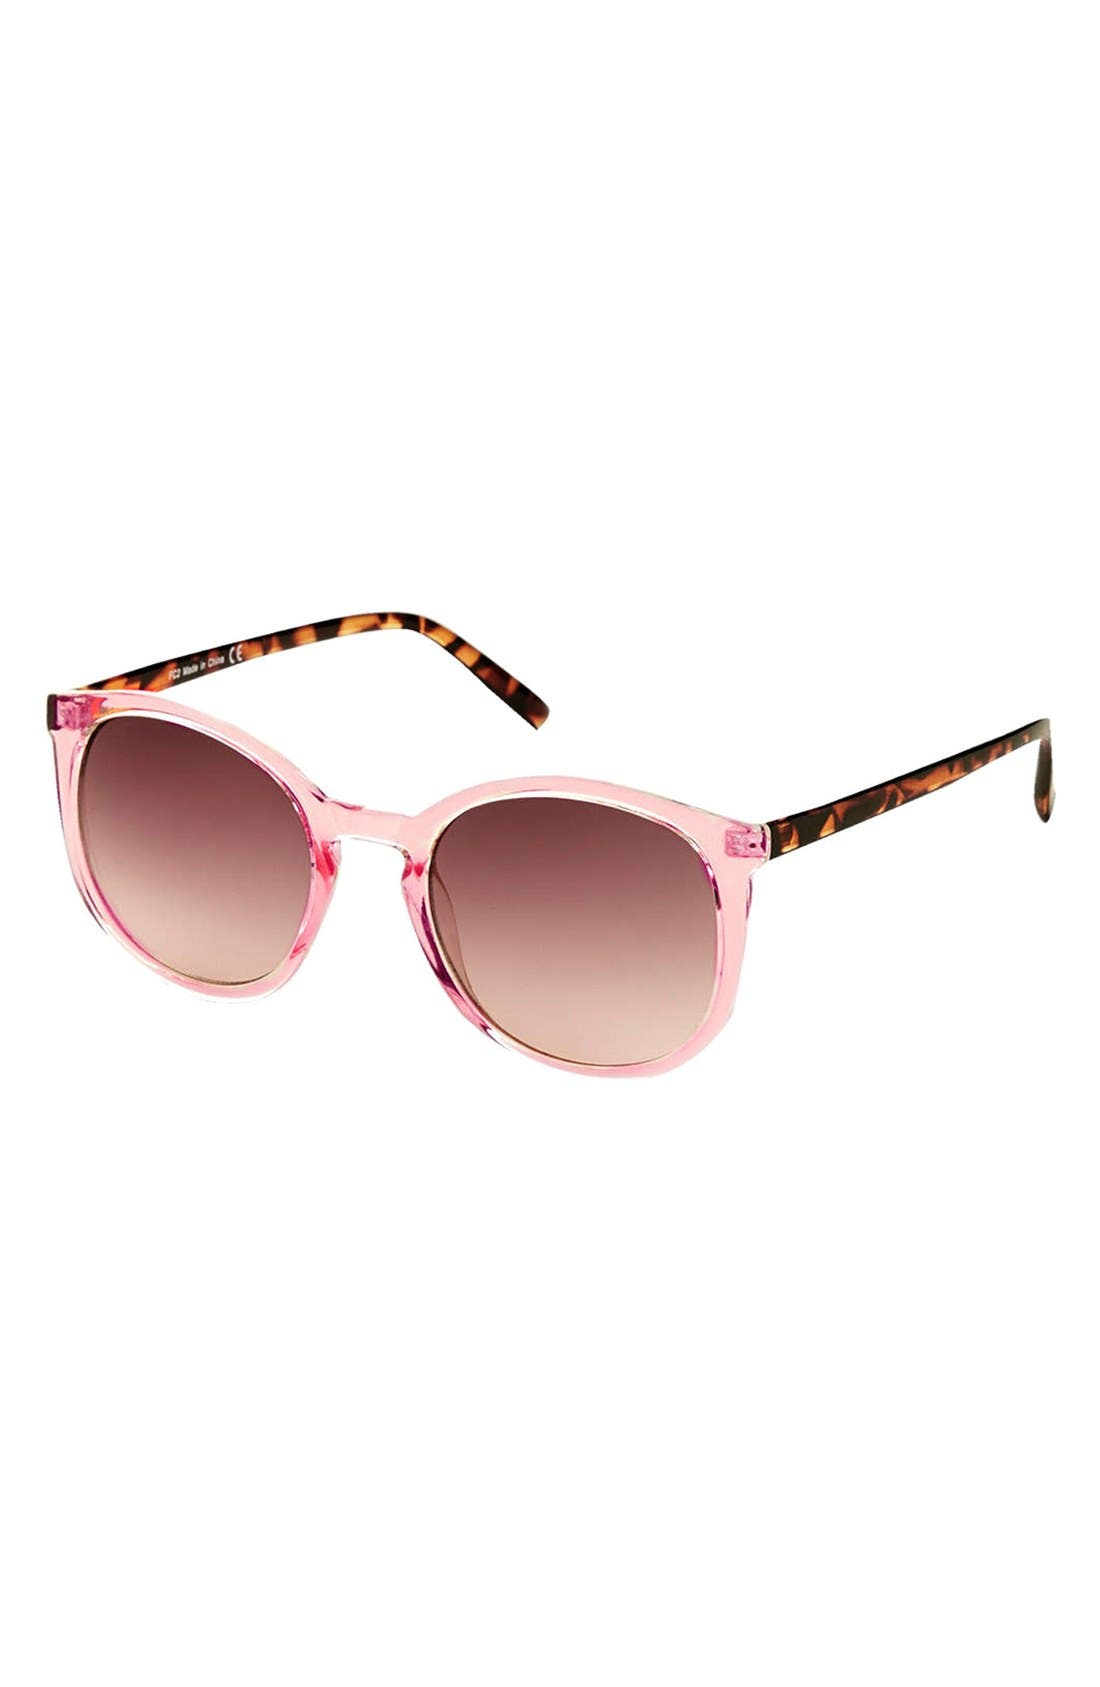 Alternate Image 1 Selected - Topshop 50mm Round Sunglasses